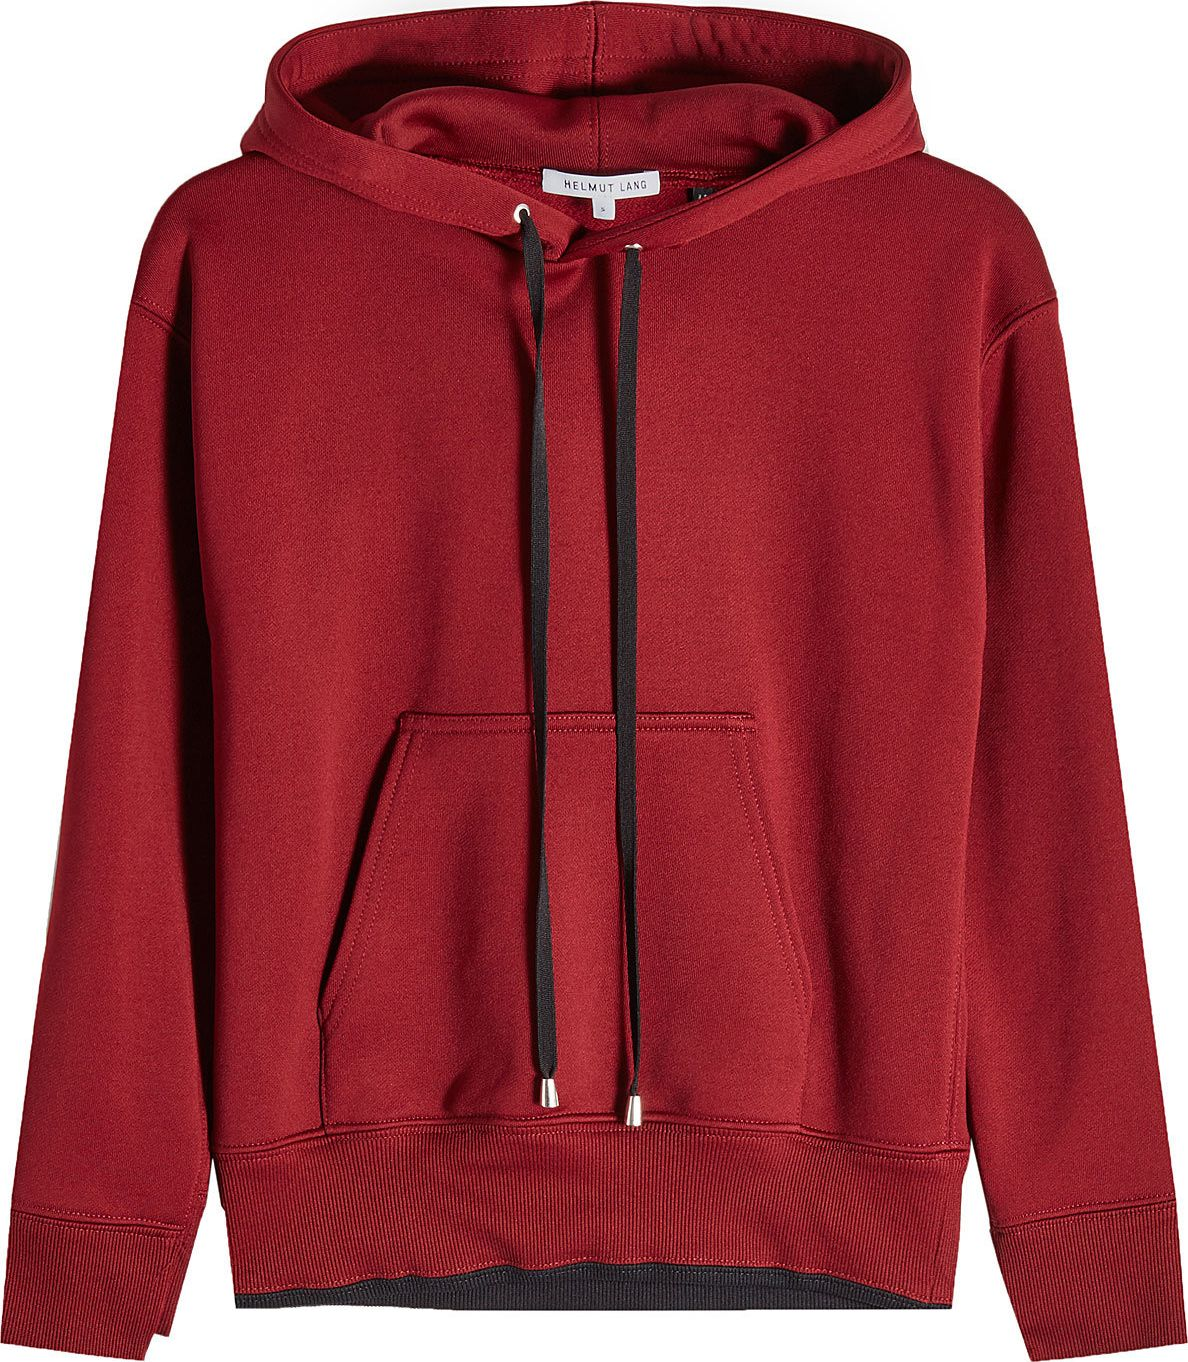 Helmut Lang - Shrunken Hoodie with Cotton